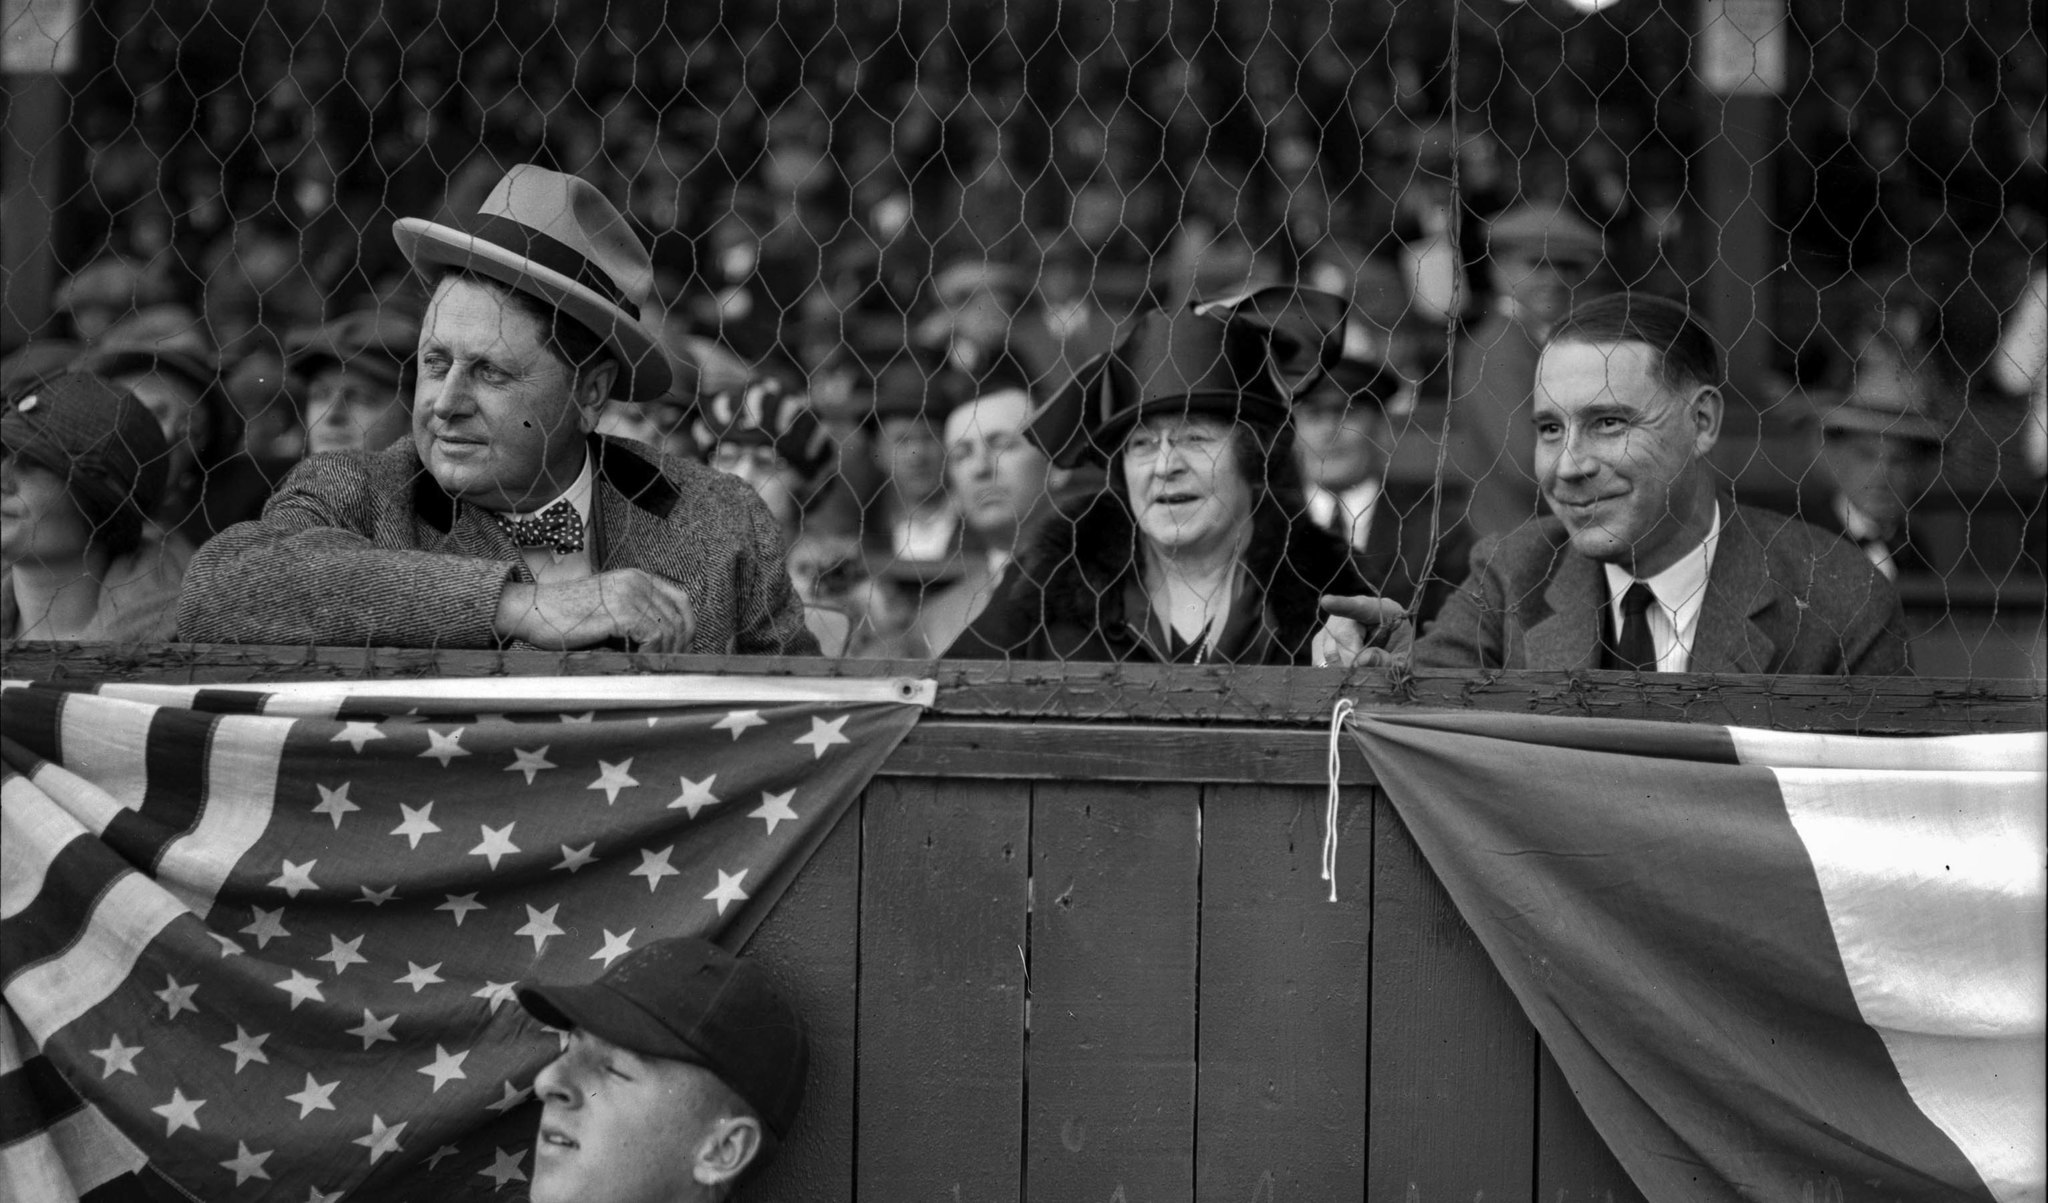 Apr. 7, 1925 Los Angeles Angels owner William Wrigley Jr., left, and wife Ada attend season opener a